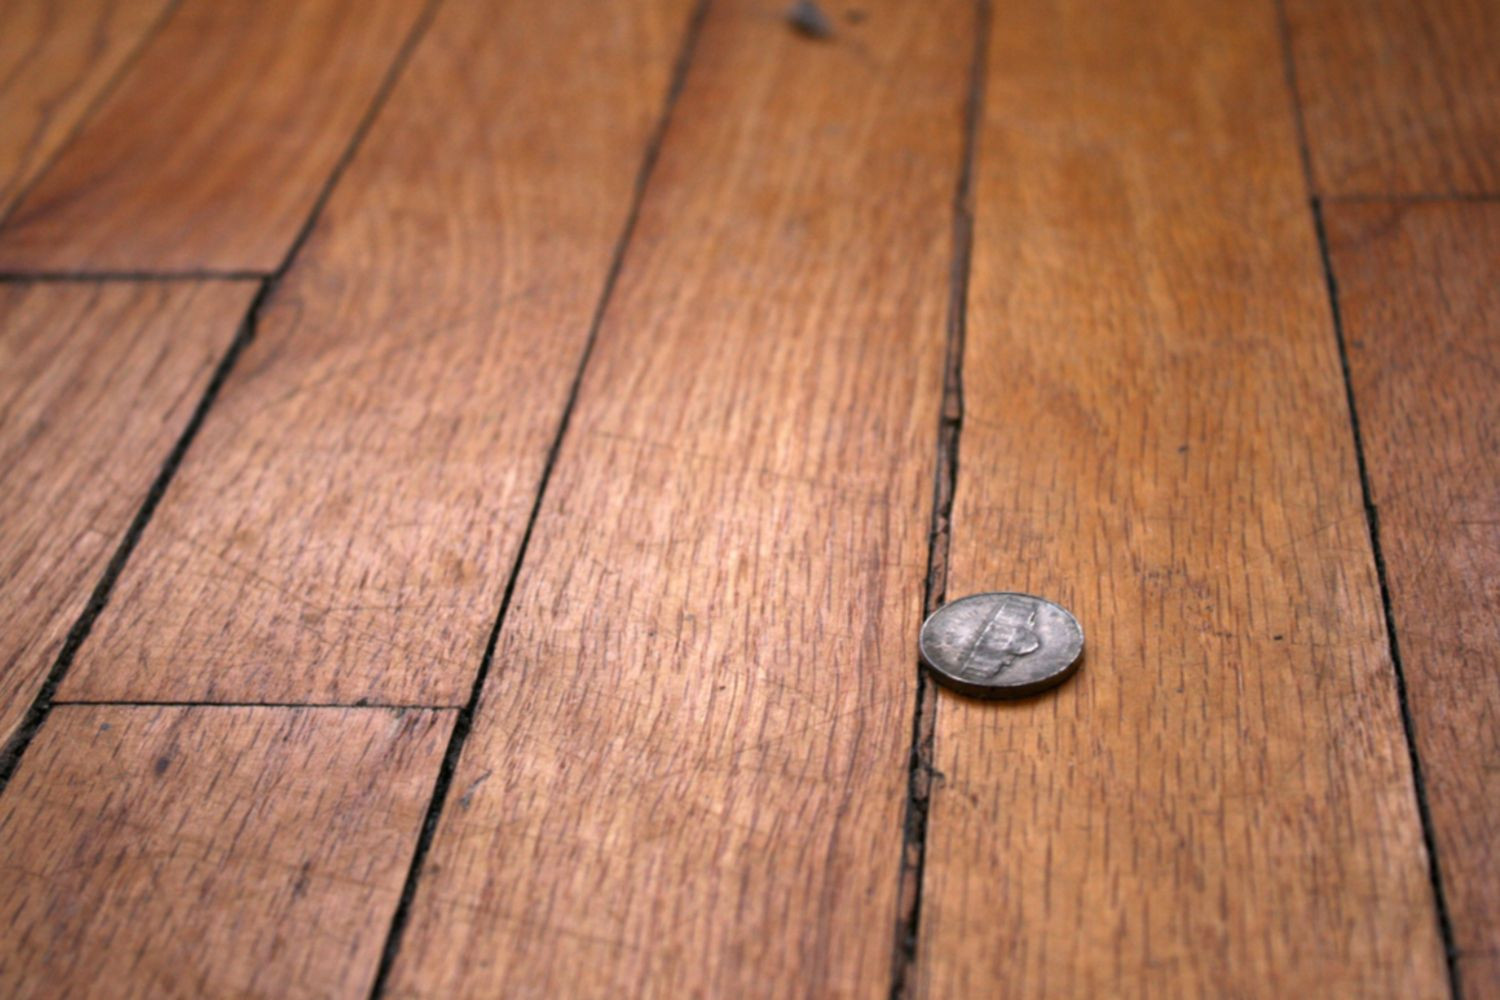 how to install floating hardwood floors yourself of why your engineered wood flooring has gaps within wood floor with gaps between boards 1500 x 1000 56a49eb25f9b58b7d0d7df8d